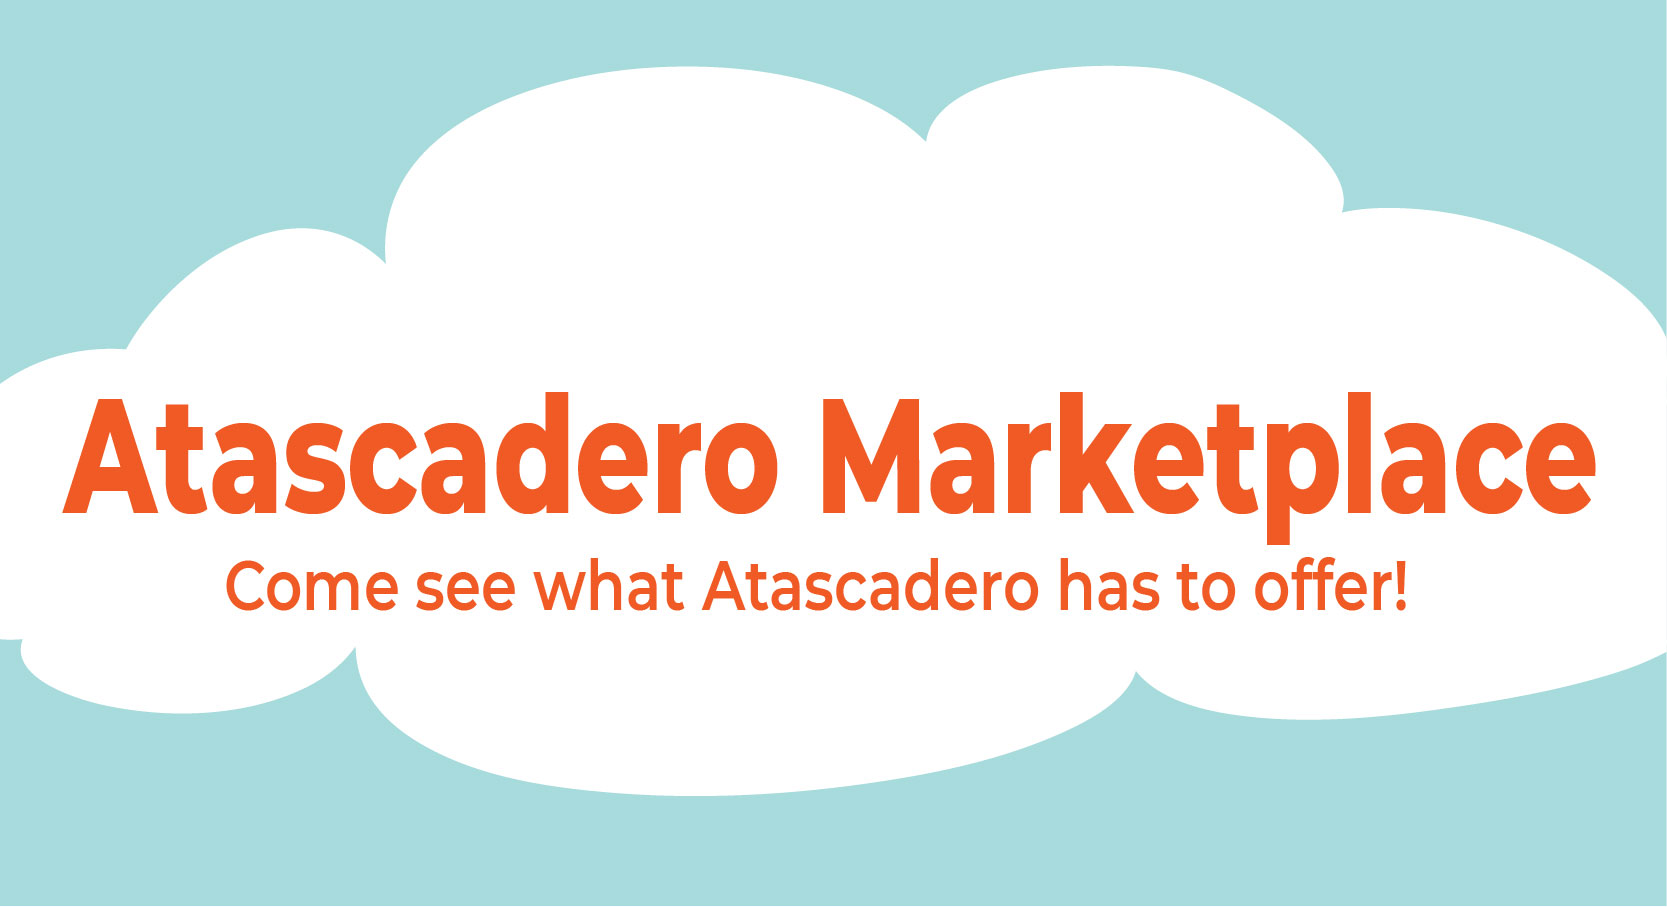 Atascadero Marketplace